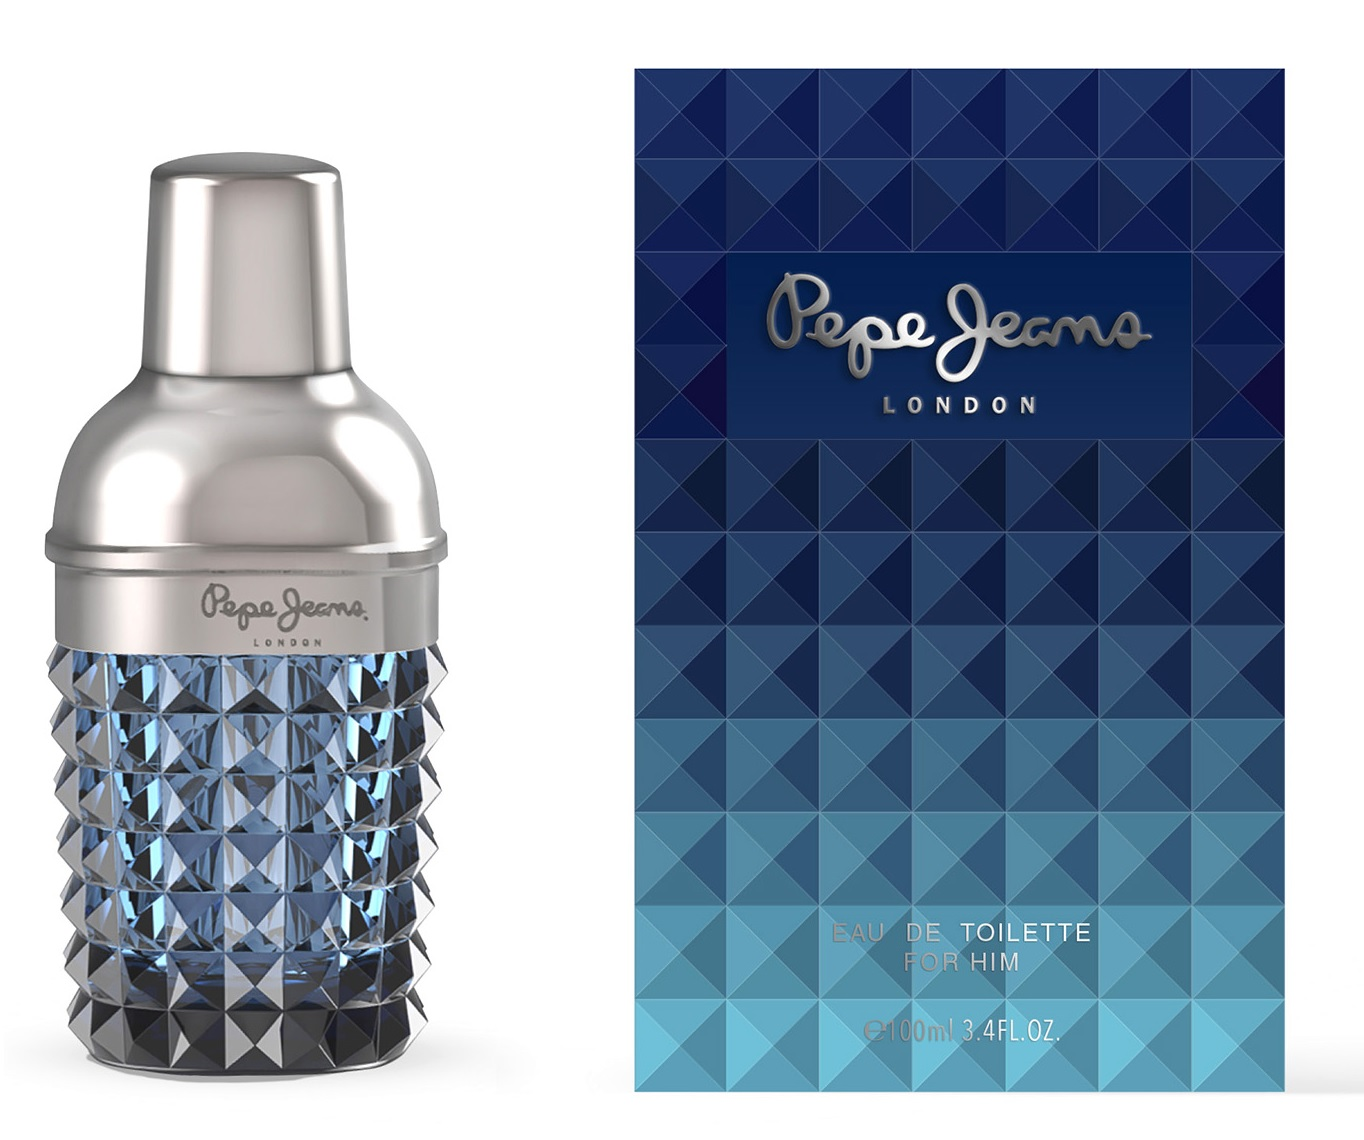 a7a5d67a04a Pepe Jeans for Him Pepe Jeans London Cologne - un nouveau parfum ...